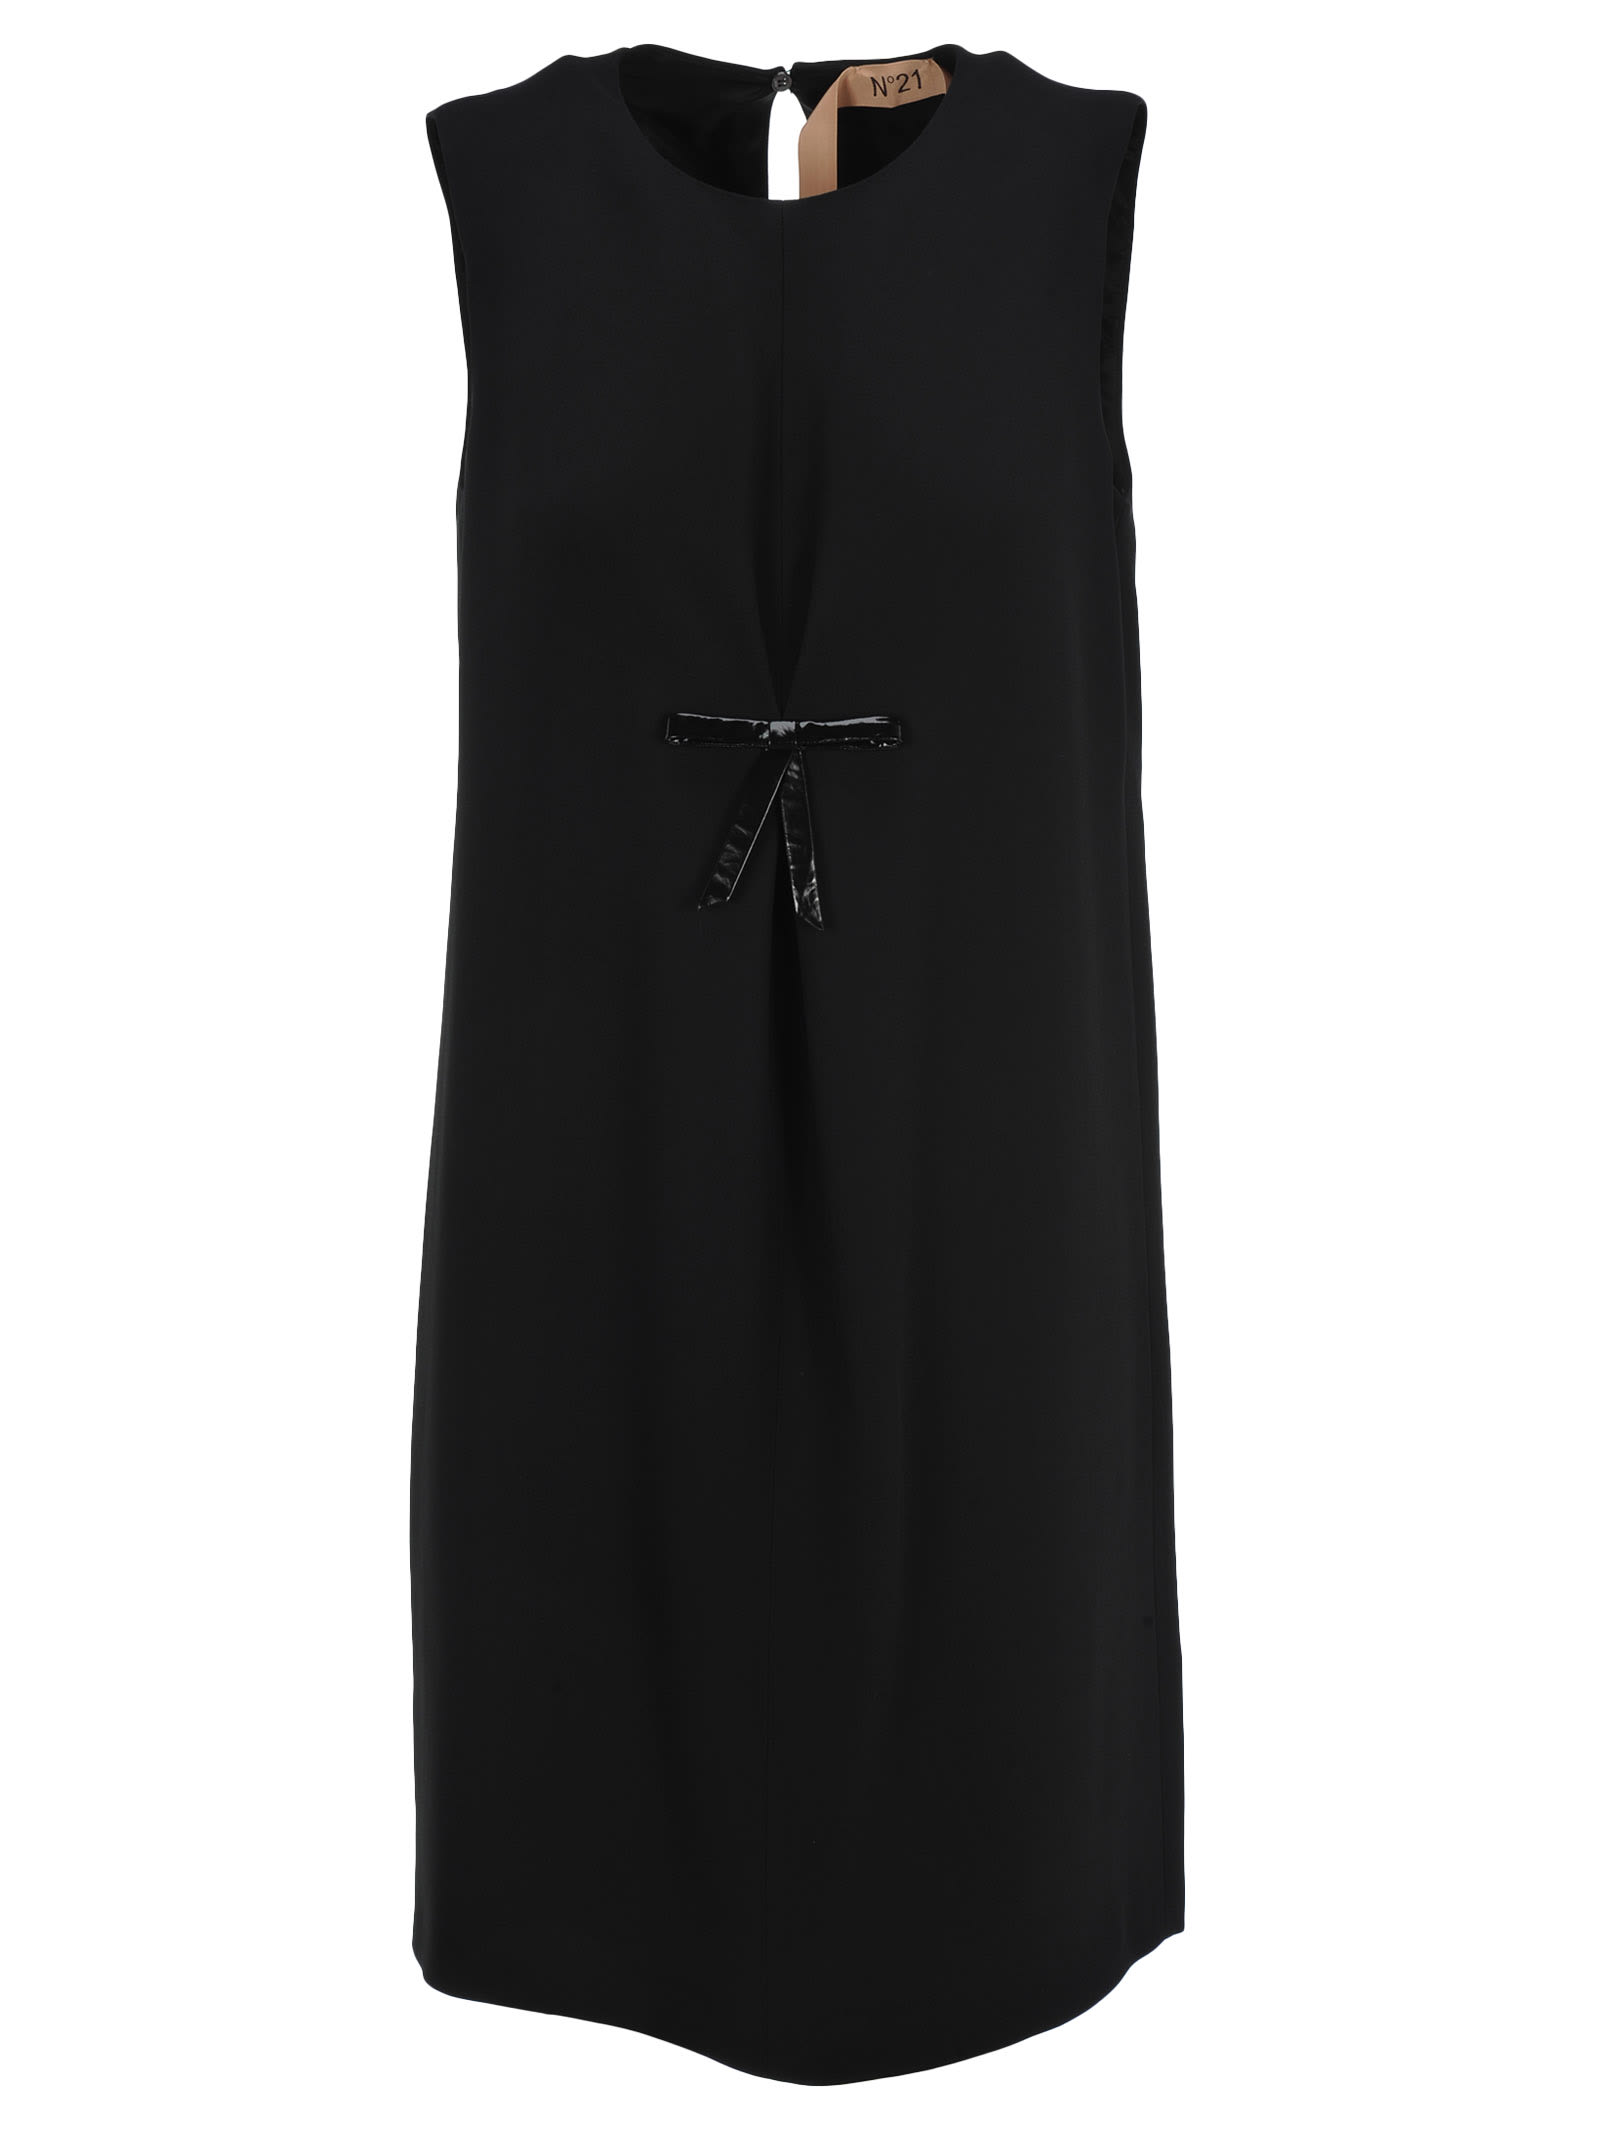 N21 Bow Detail Dress